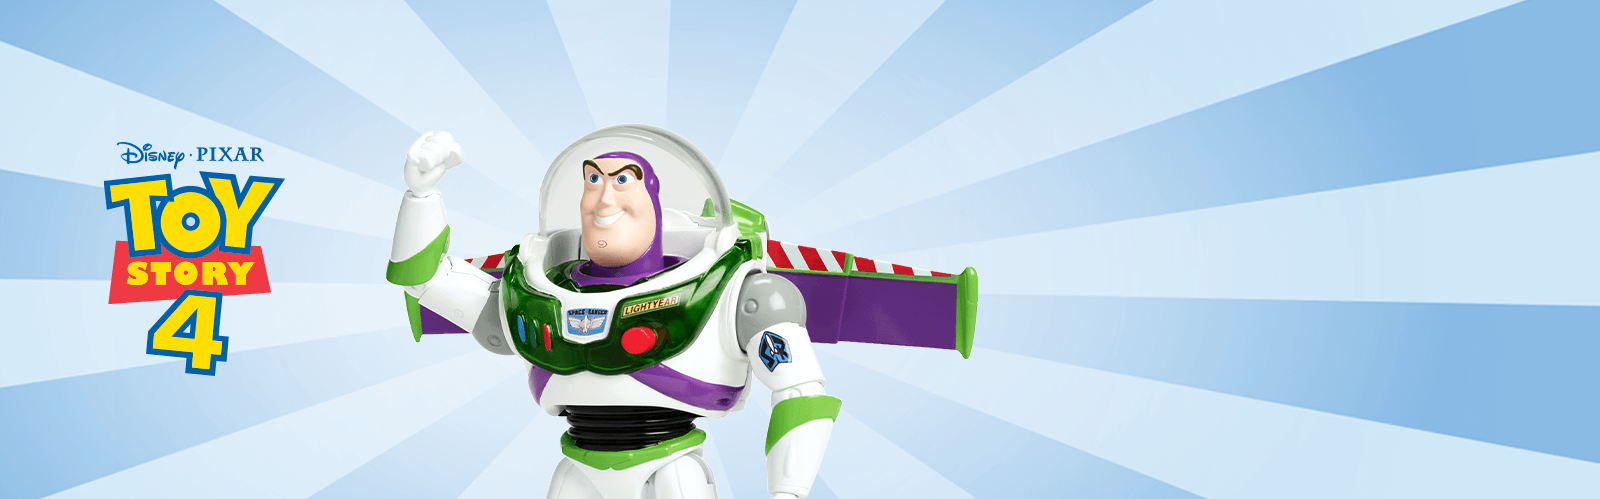 Toy Story 4 Background Image with Buzz Lightyear